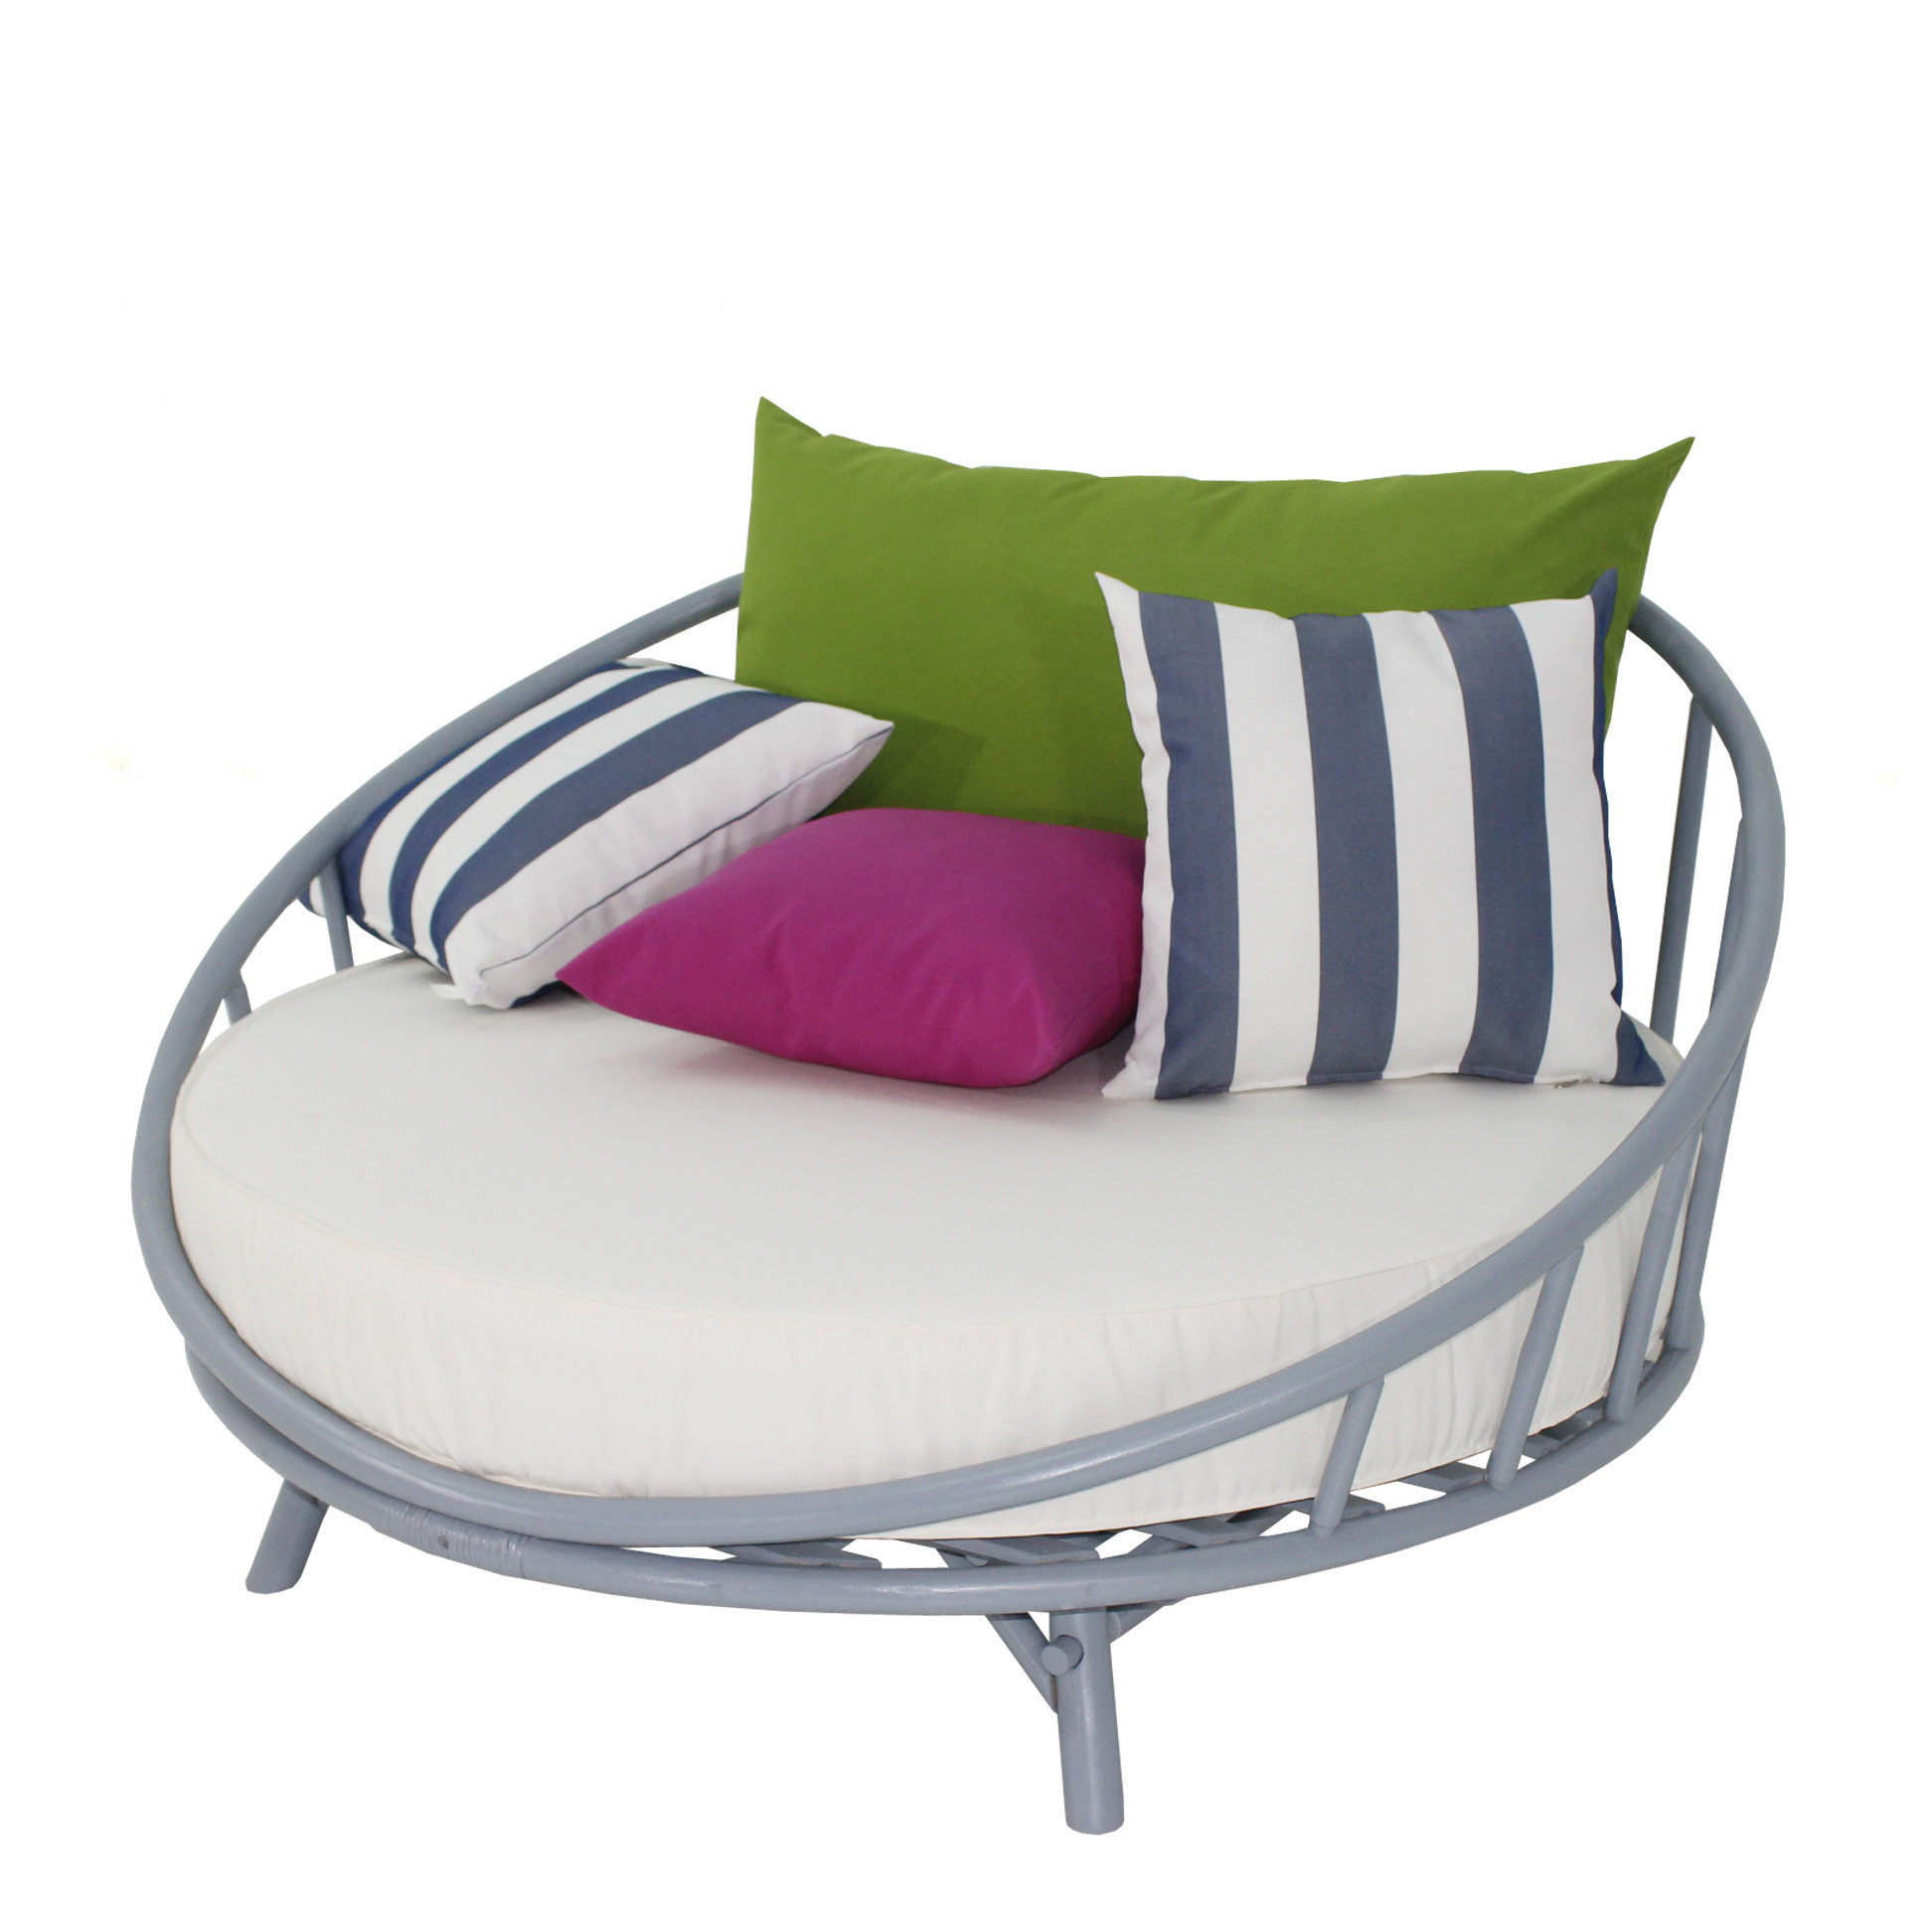 Latest Olu Bamboo Large Round Patio Daybed With Cushions For Beal Patio Daybeds With Cushions (View 12 of 25)